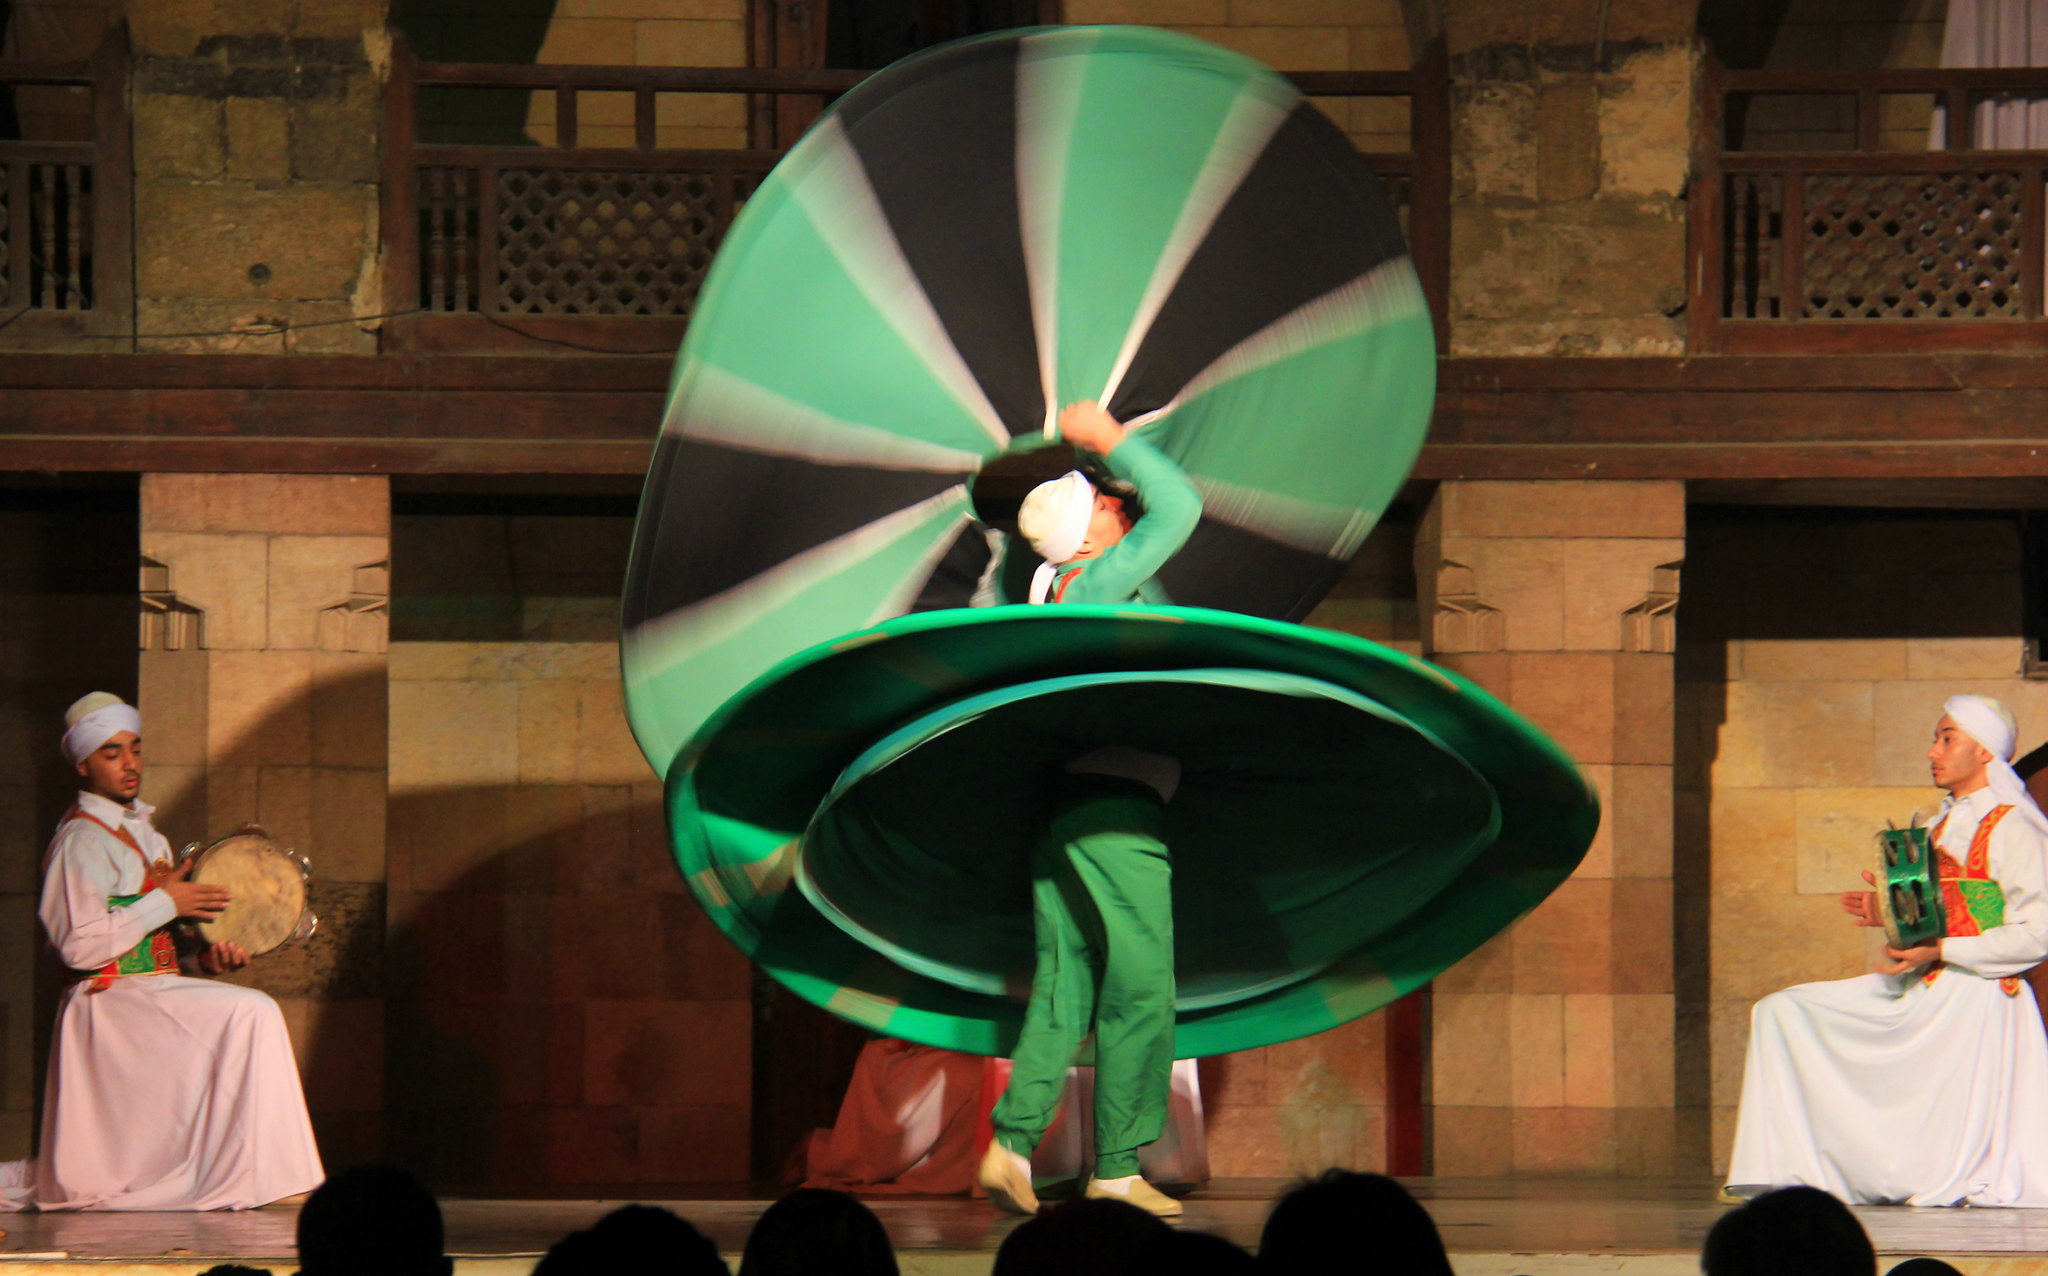 Tanoura dance finale is amazing